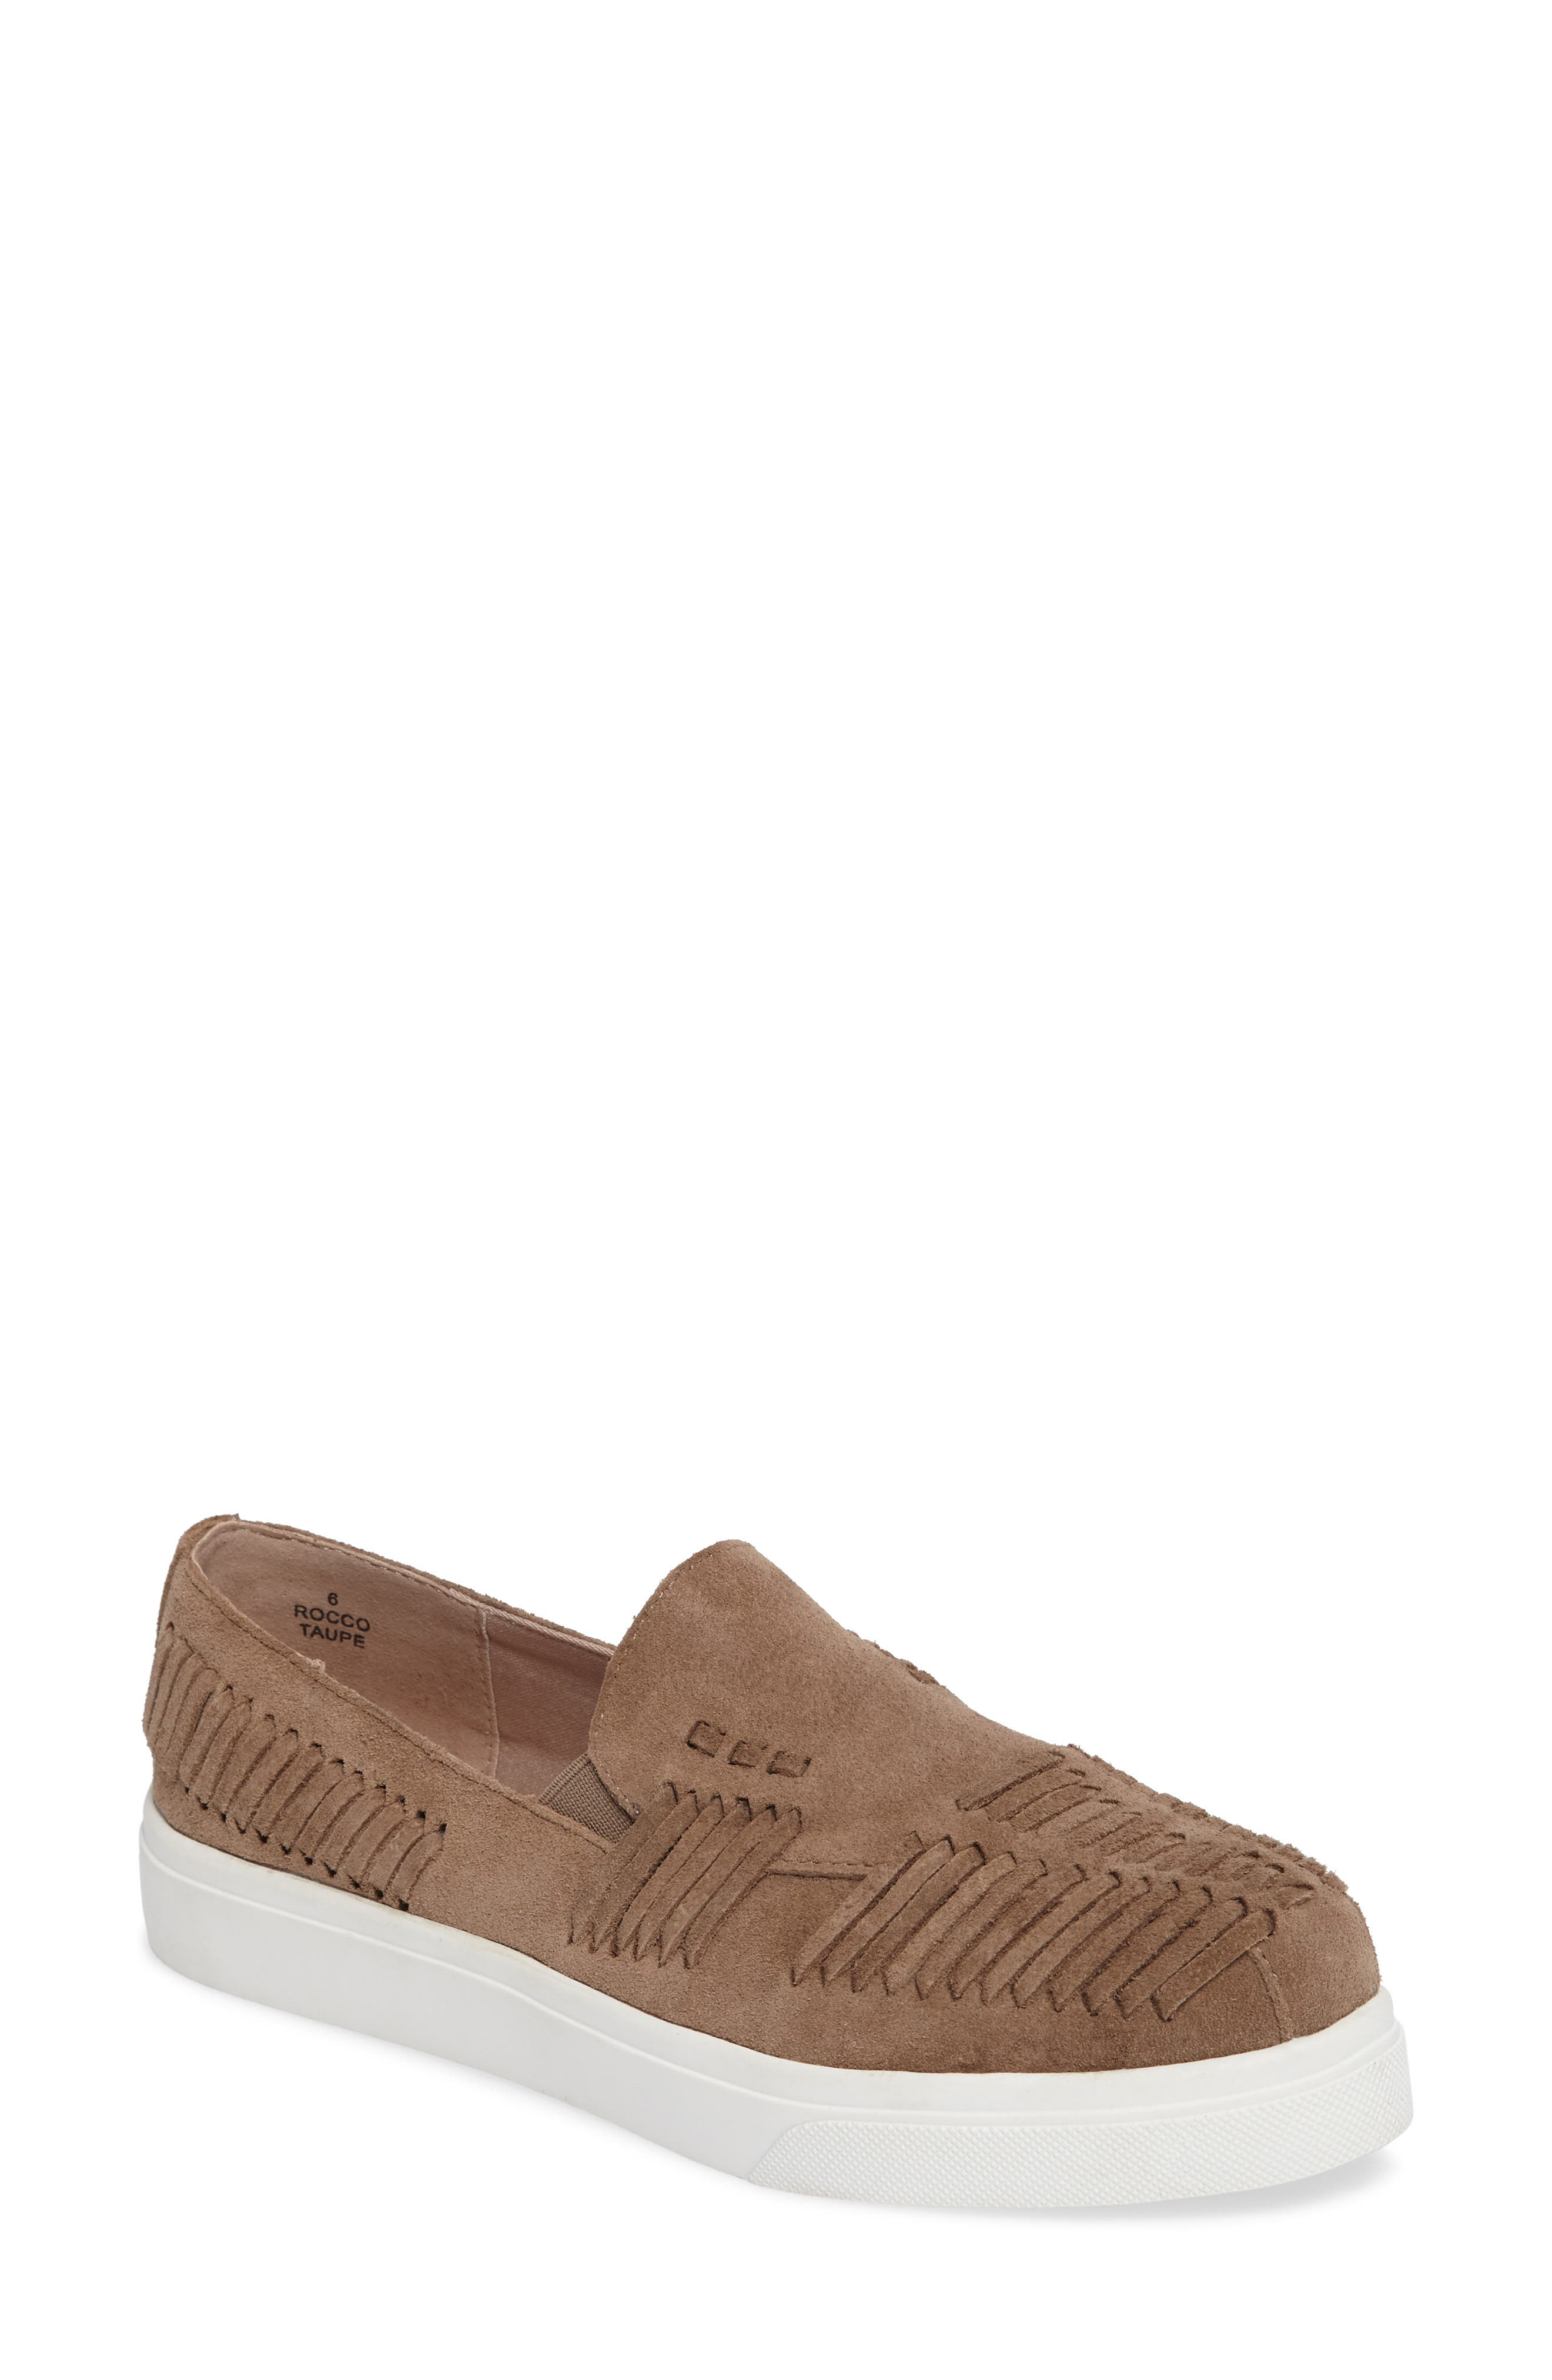 Rocco Woven Slip-On Sneaker,                             Main thumbnail 1, color,                             Taupe Suede